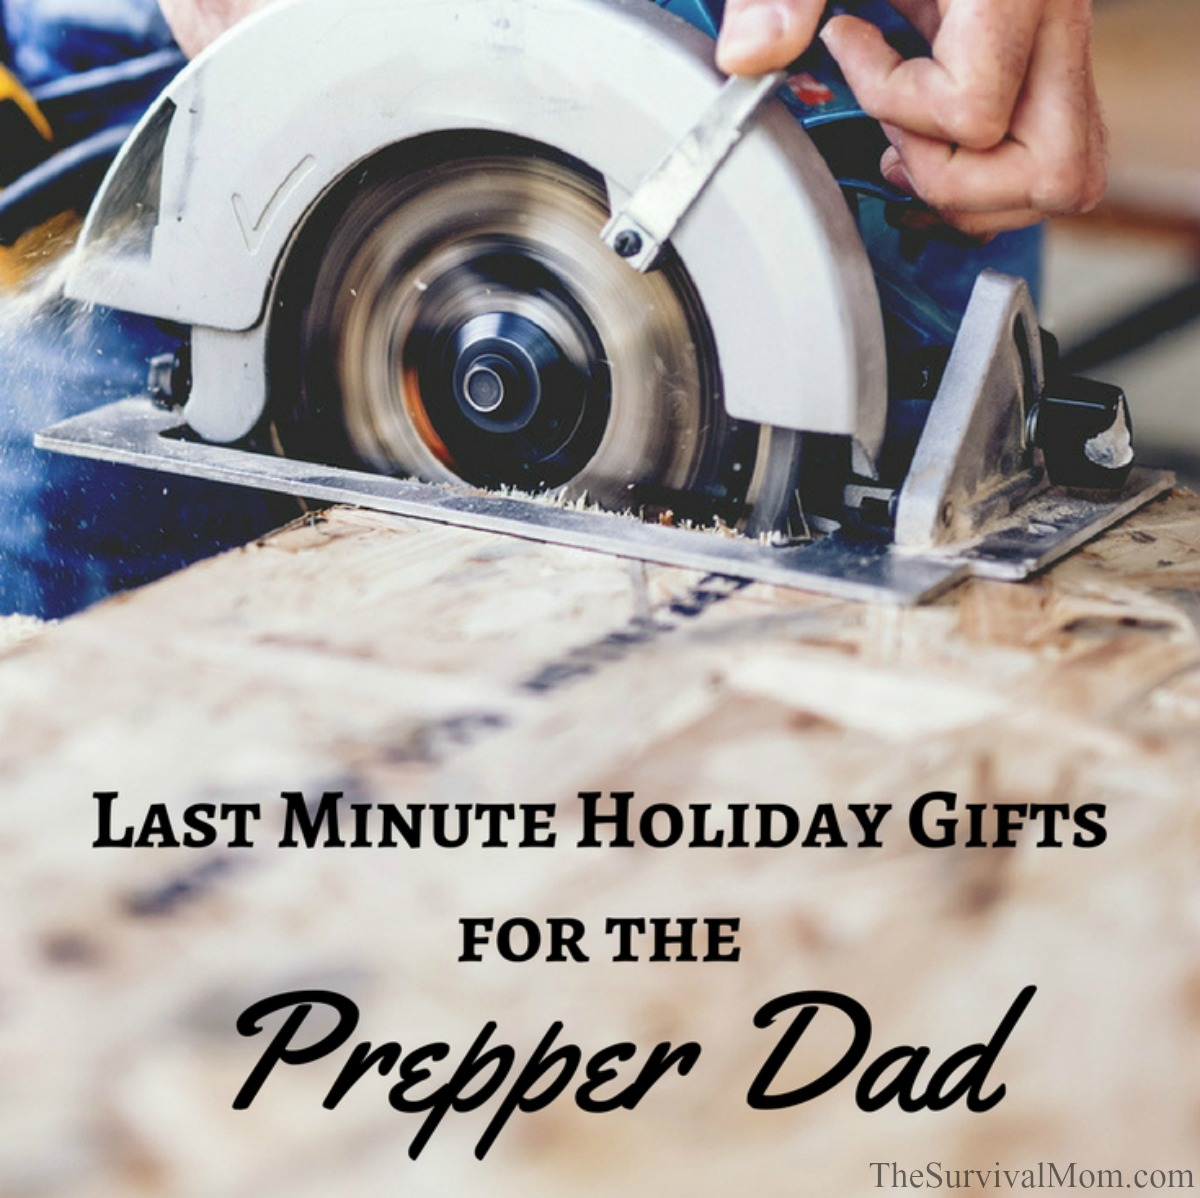 Last Minute Holiday Gifts for the Prepper Dad via The Survival Mom